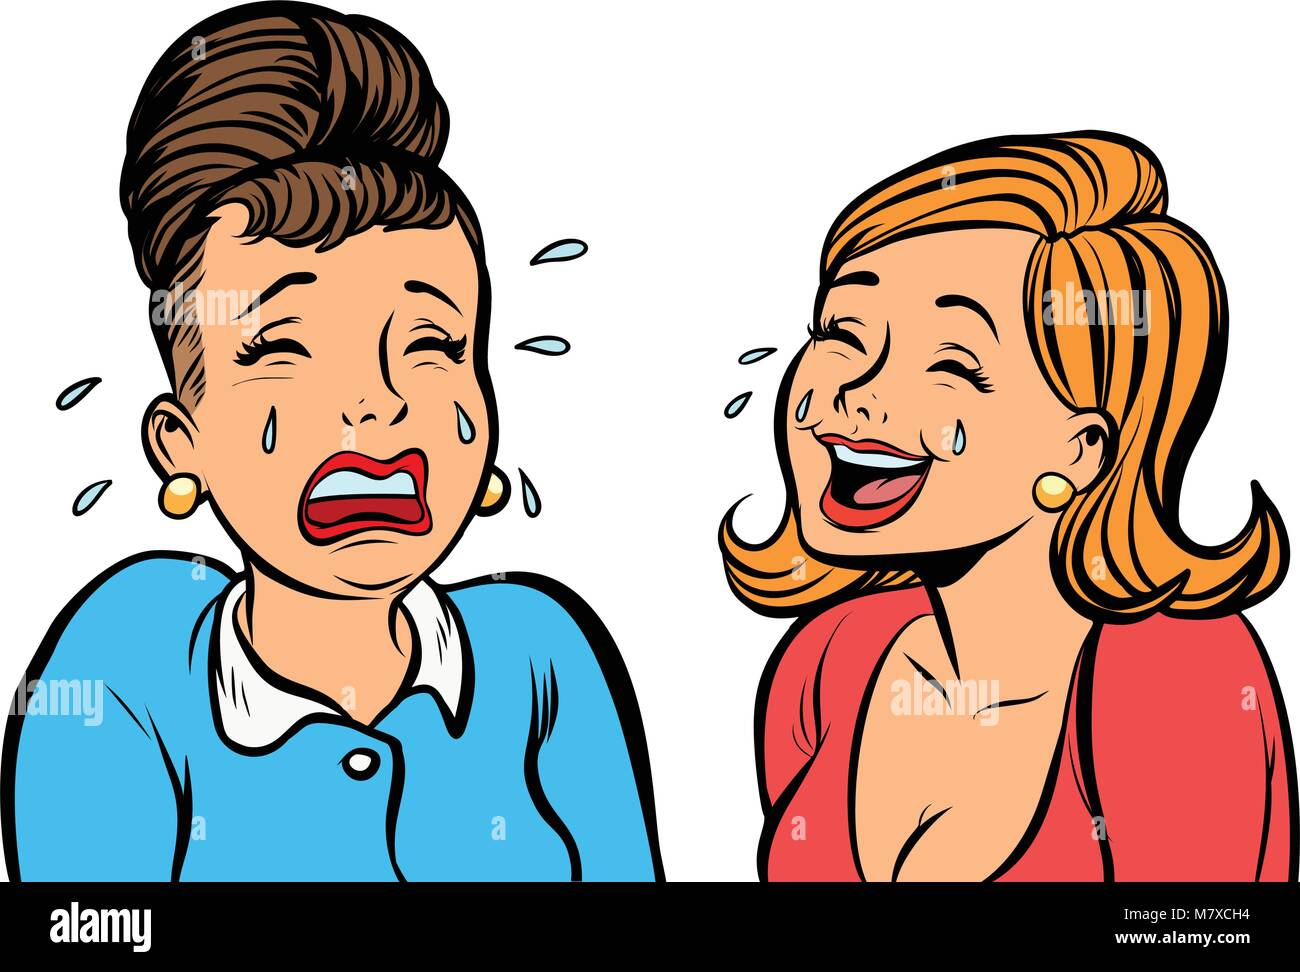 girlfriend women one cries, other laughs isolate on white backgr - Stock Image